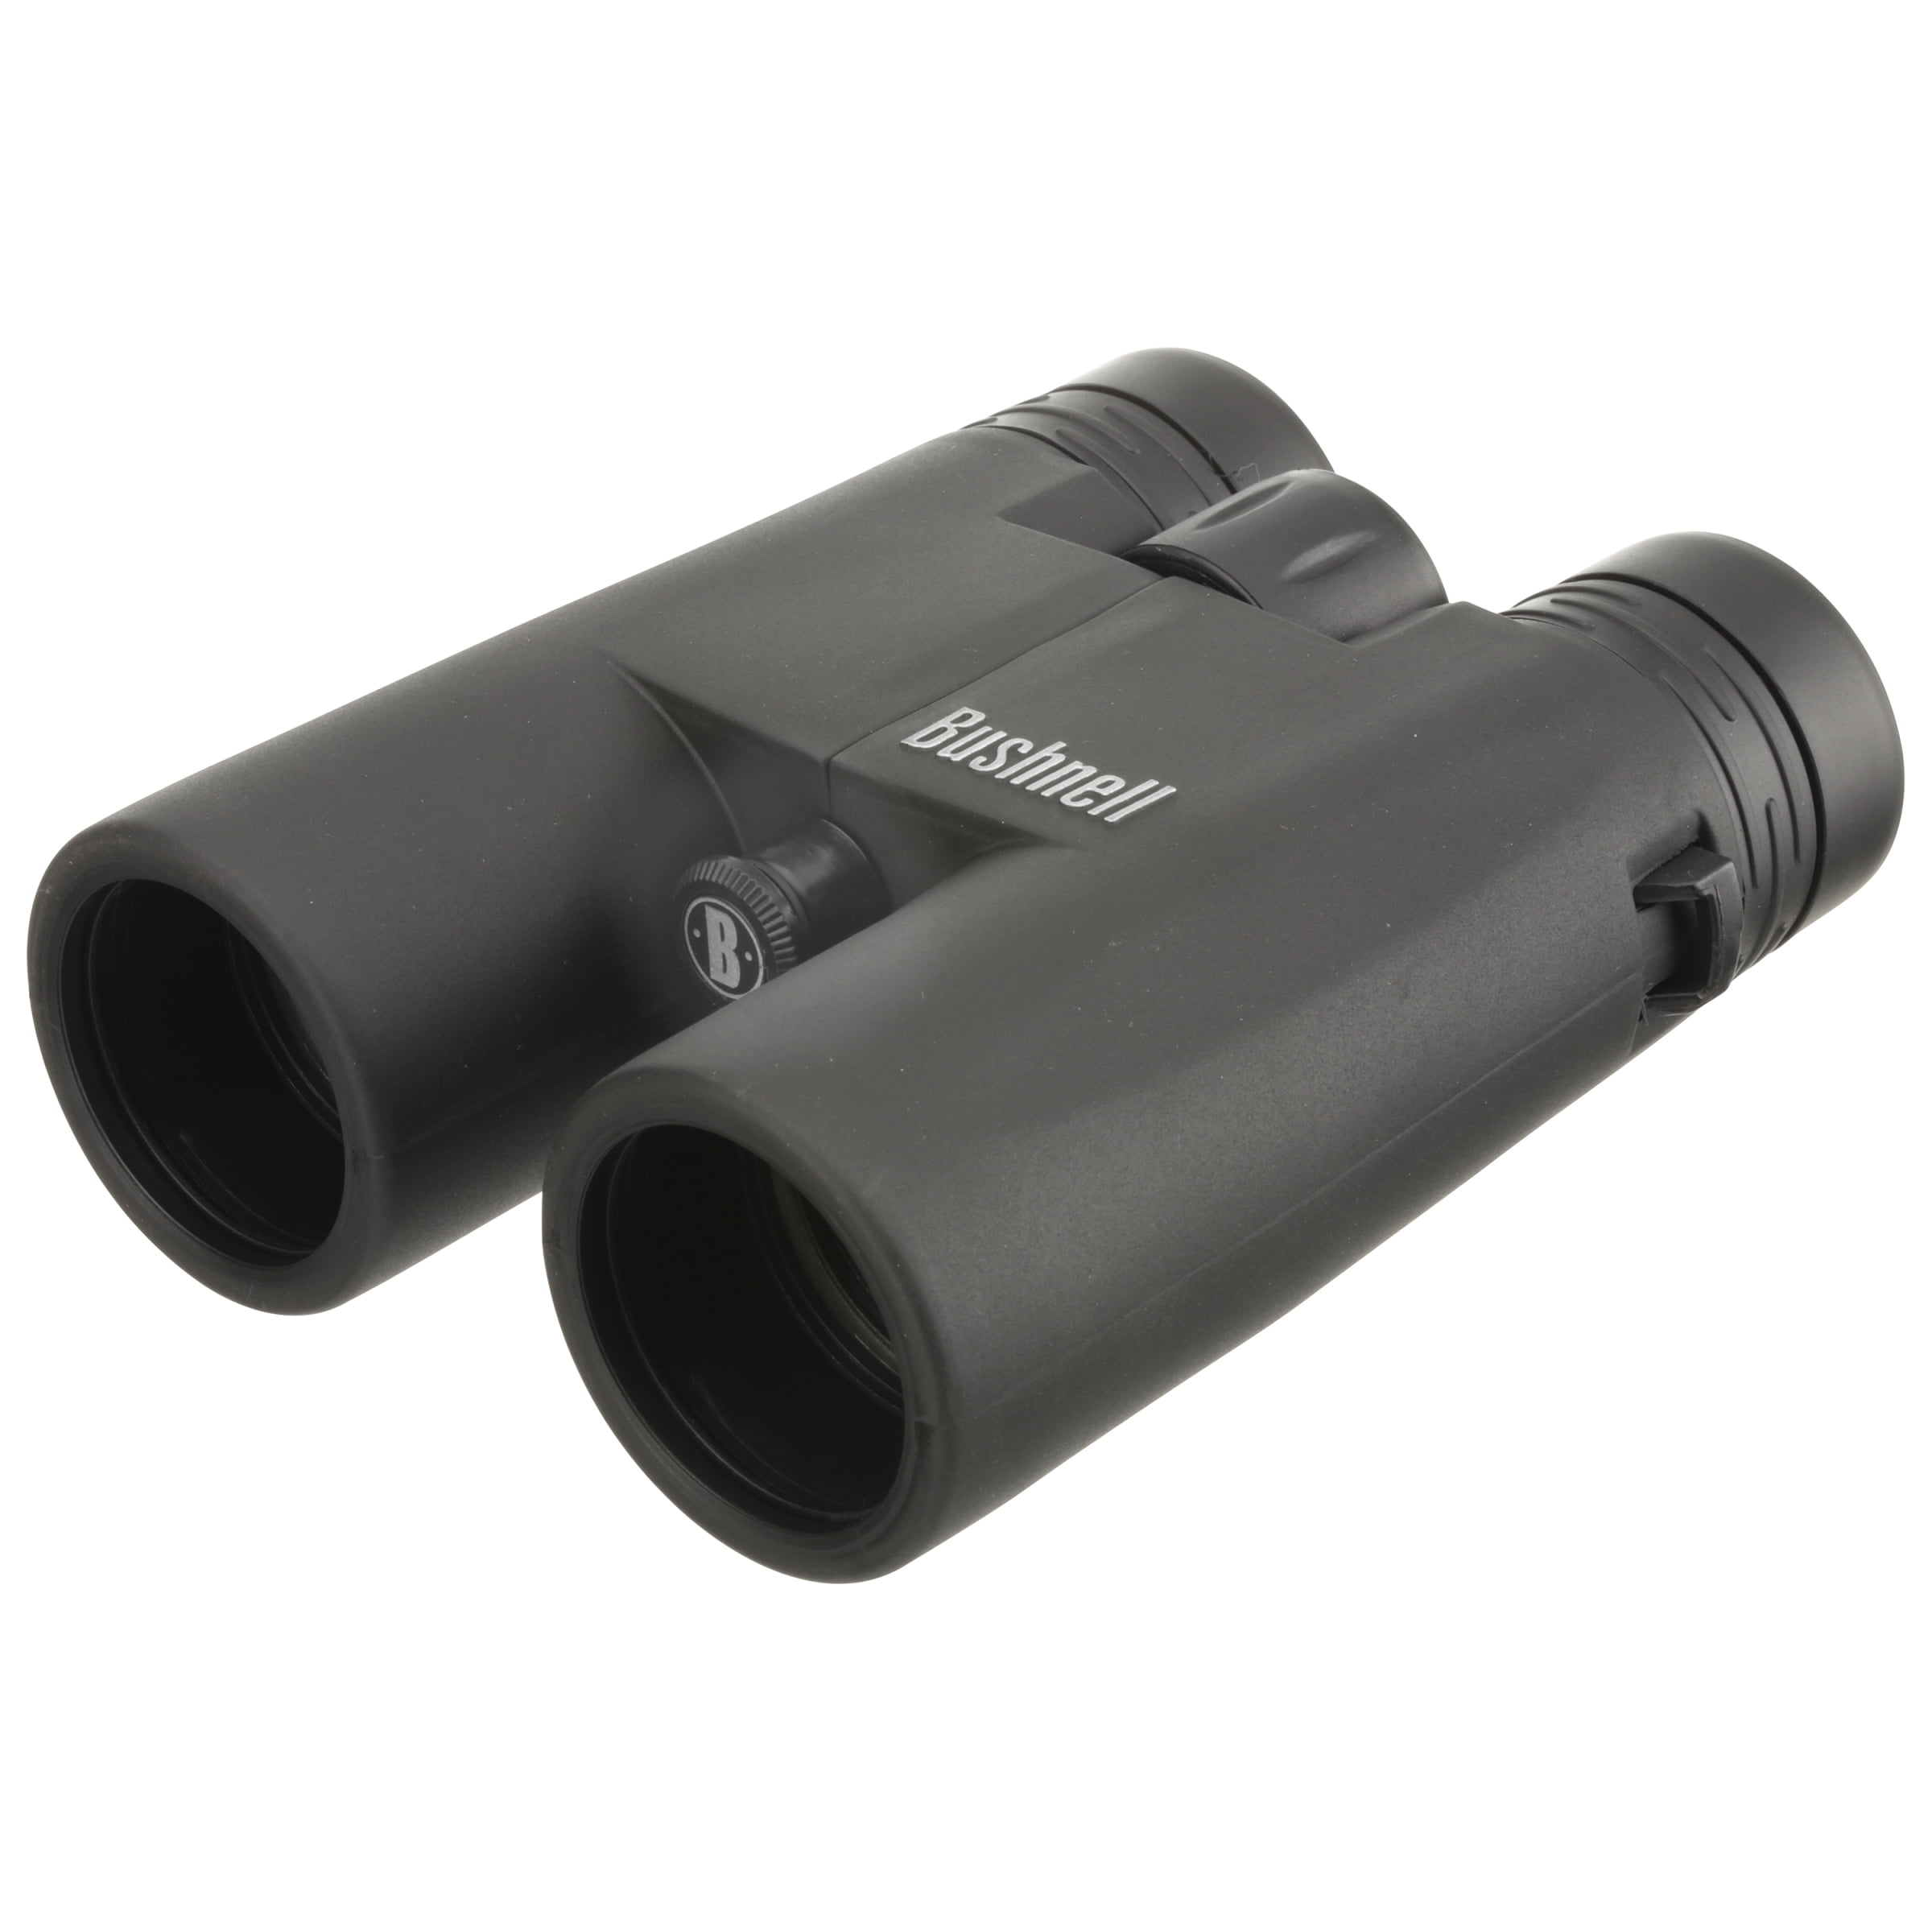 Bushnell PowerView All-Purpose Full Size Binocular by Bushnell Outdoor Products